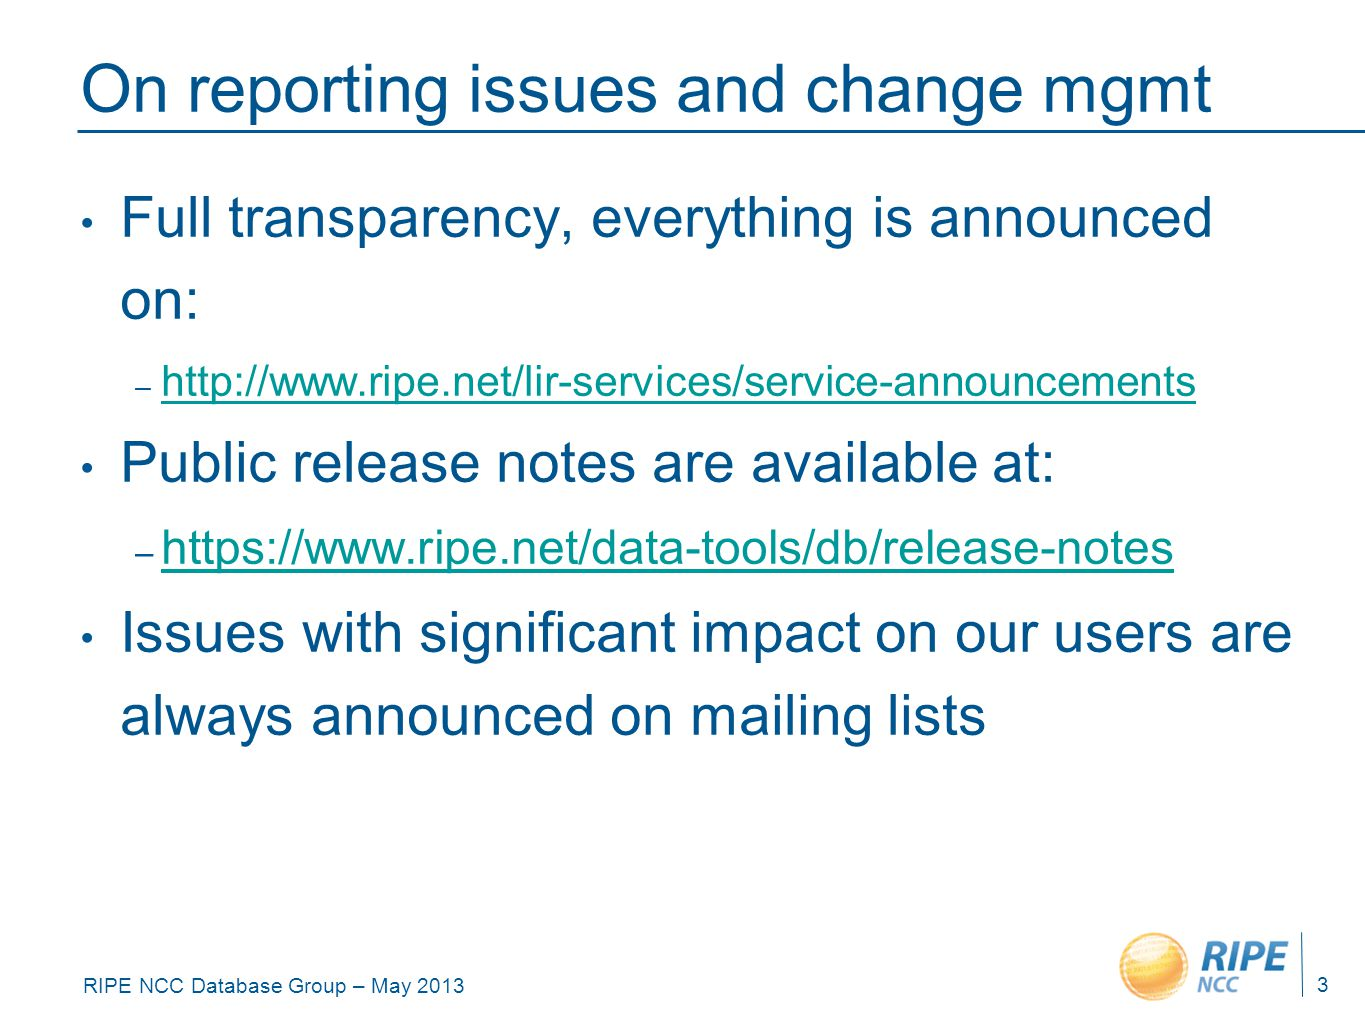 RIPE NCC Database Group – May 2013 On reporting issues and change mgmt Full transparency, everything is announced on: – http://www.ripe.net/lir-services/service-announcements http://www.ripe.net/lir-services/service-announcements Public release notes are available at: – https://www.ripe.net/data-tools/db/release-notes https://www.ripe.net/data-tools/db/release-notes Issues with significant impact on our users are always announced on mailing lists 3